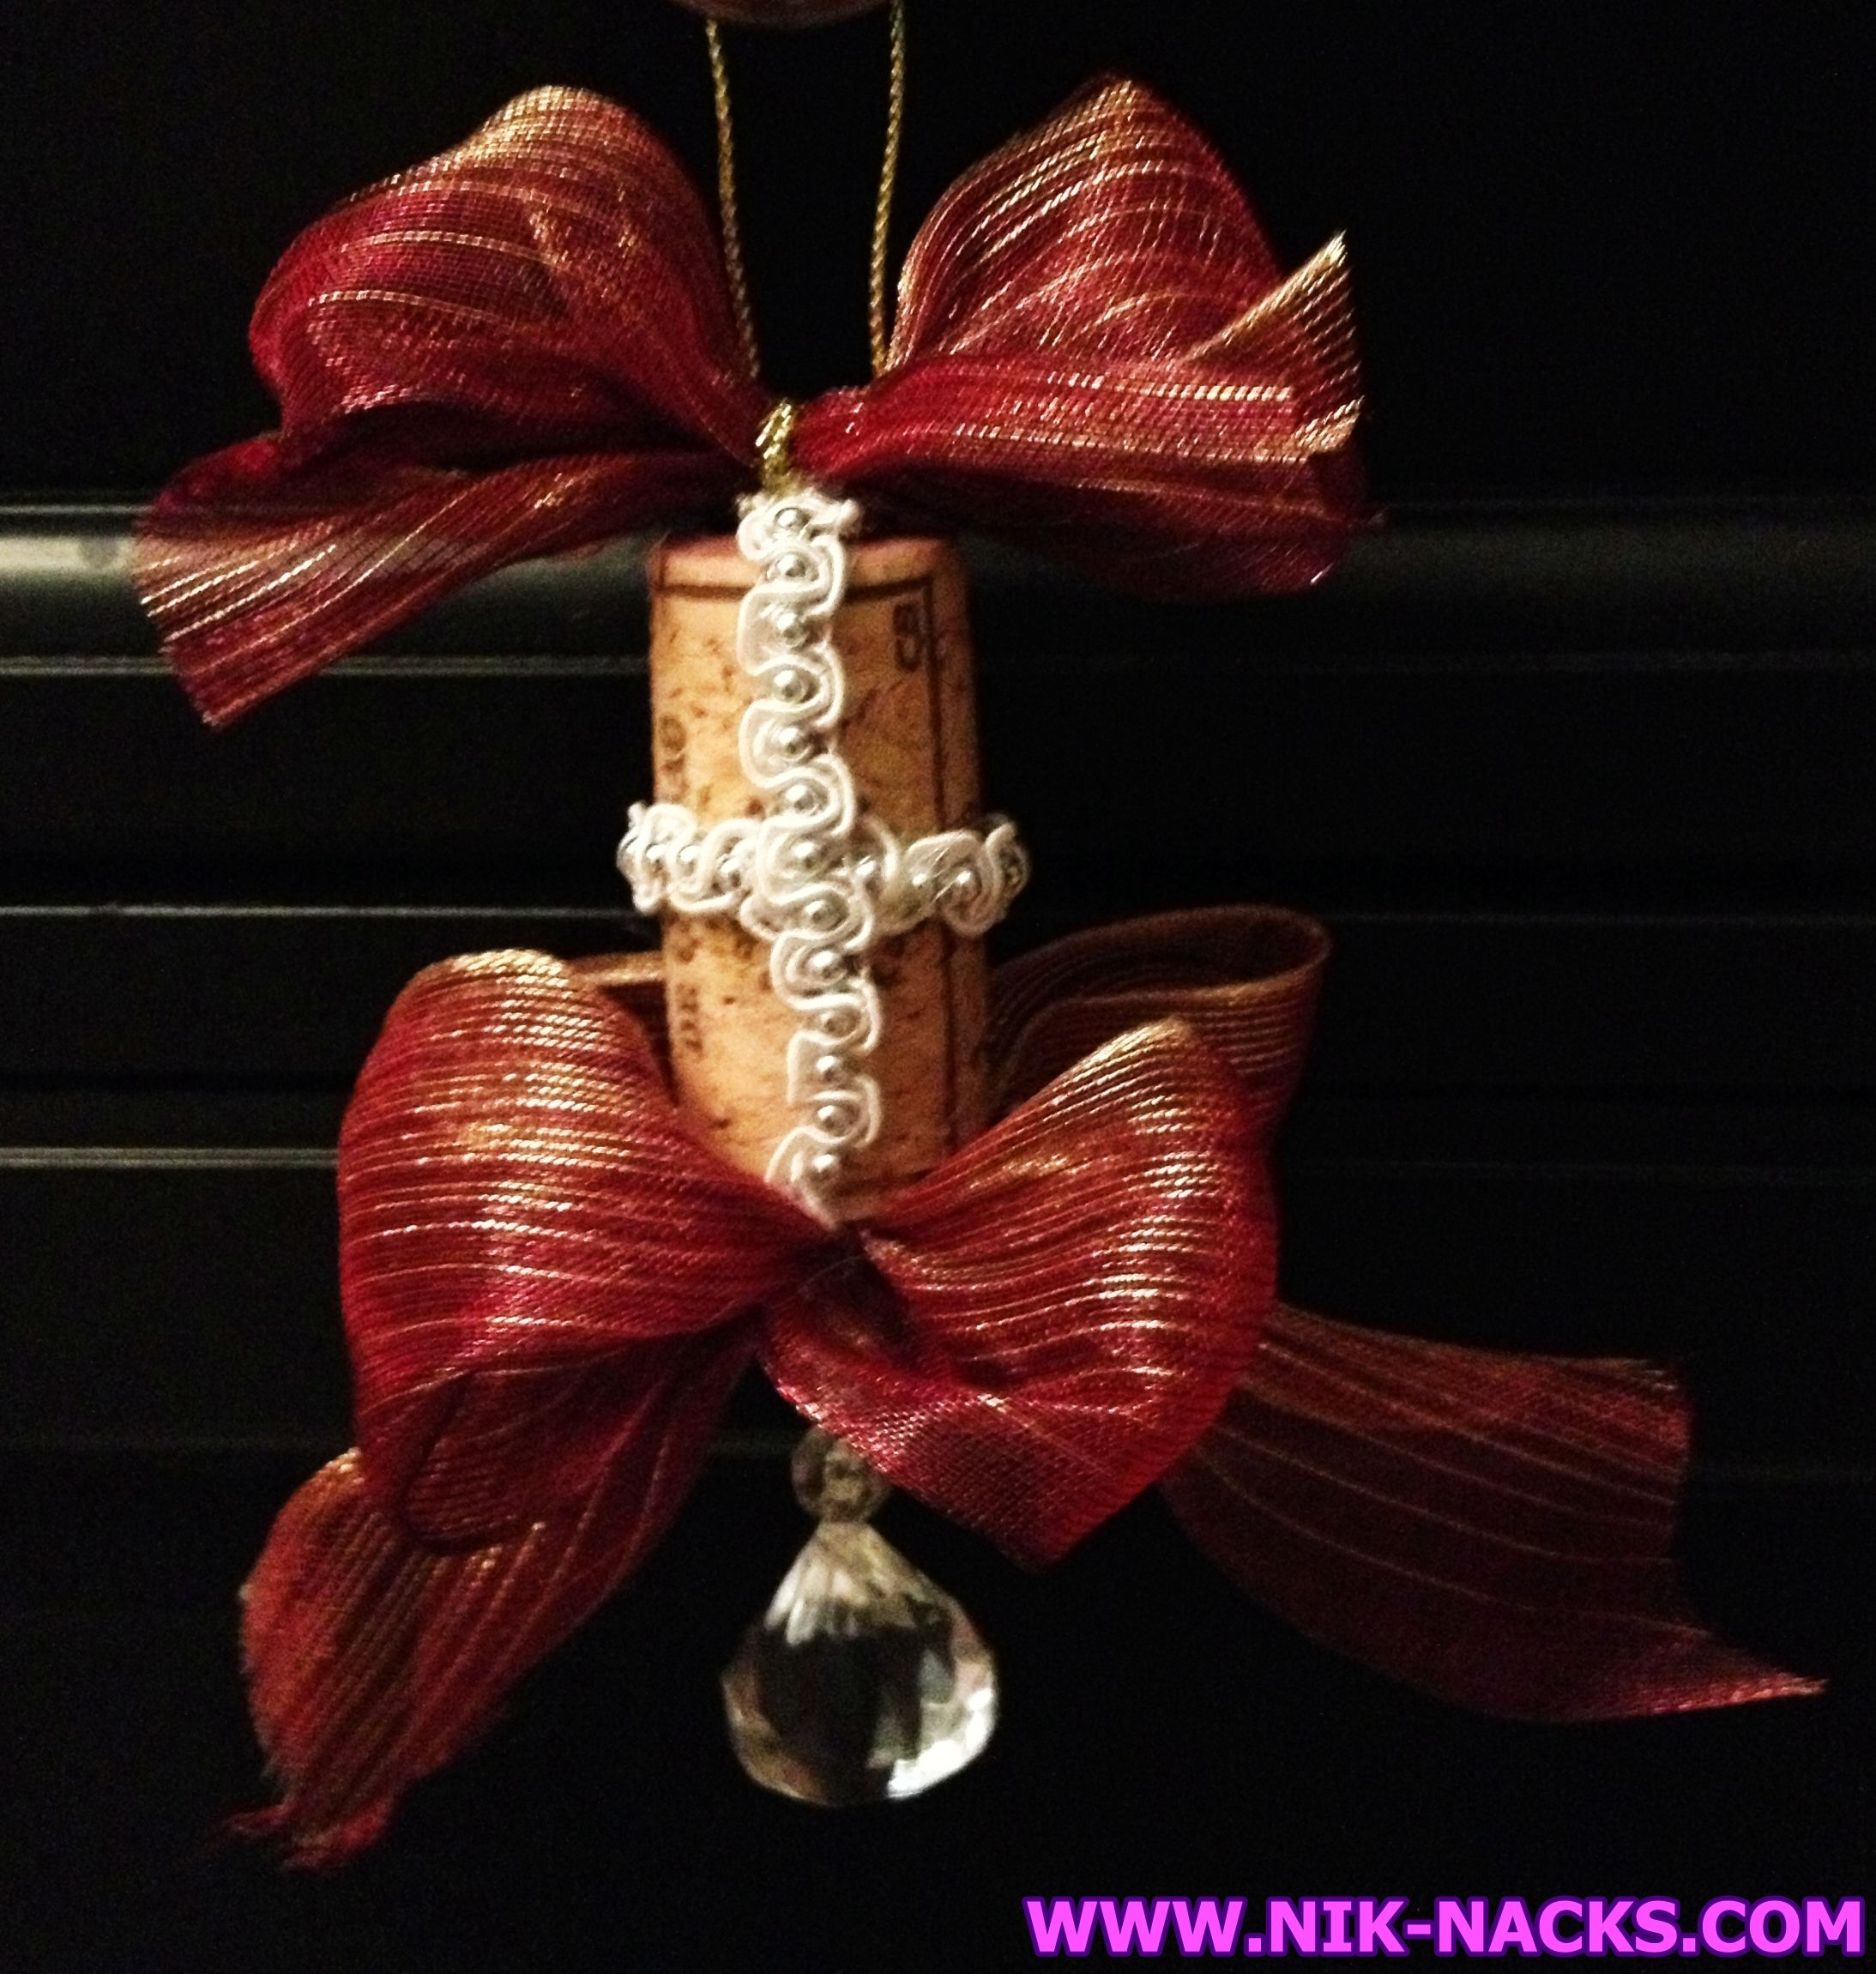 Diamond Wine Cork Ornament Wine Cork Ornament With Red And Gold Metallic Bows And A Hanging Diamond Wine Cork Ornaments Wine Cork Art Cork Art